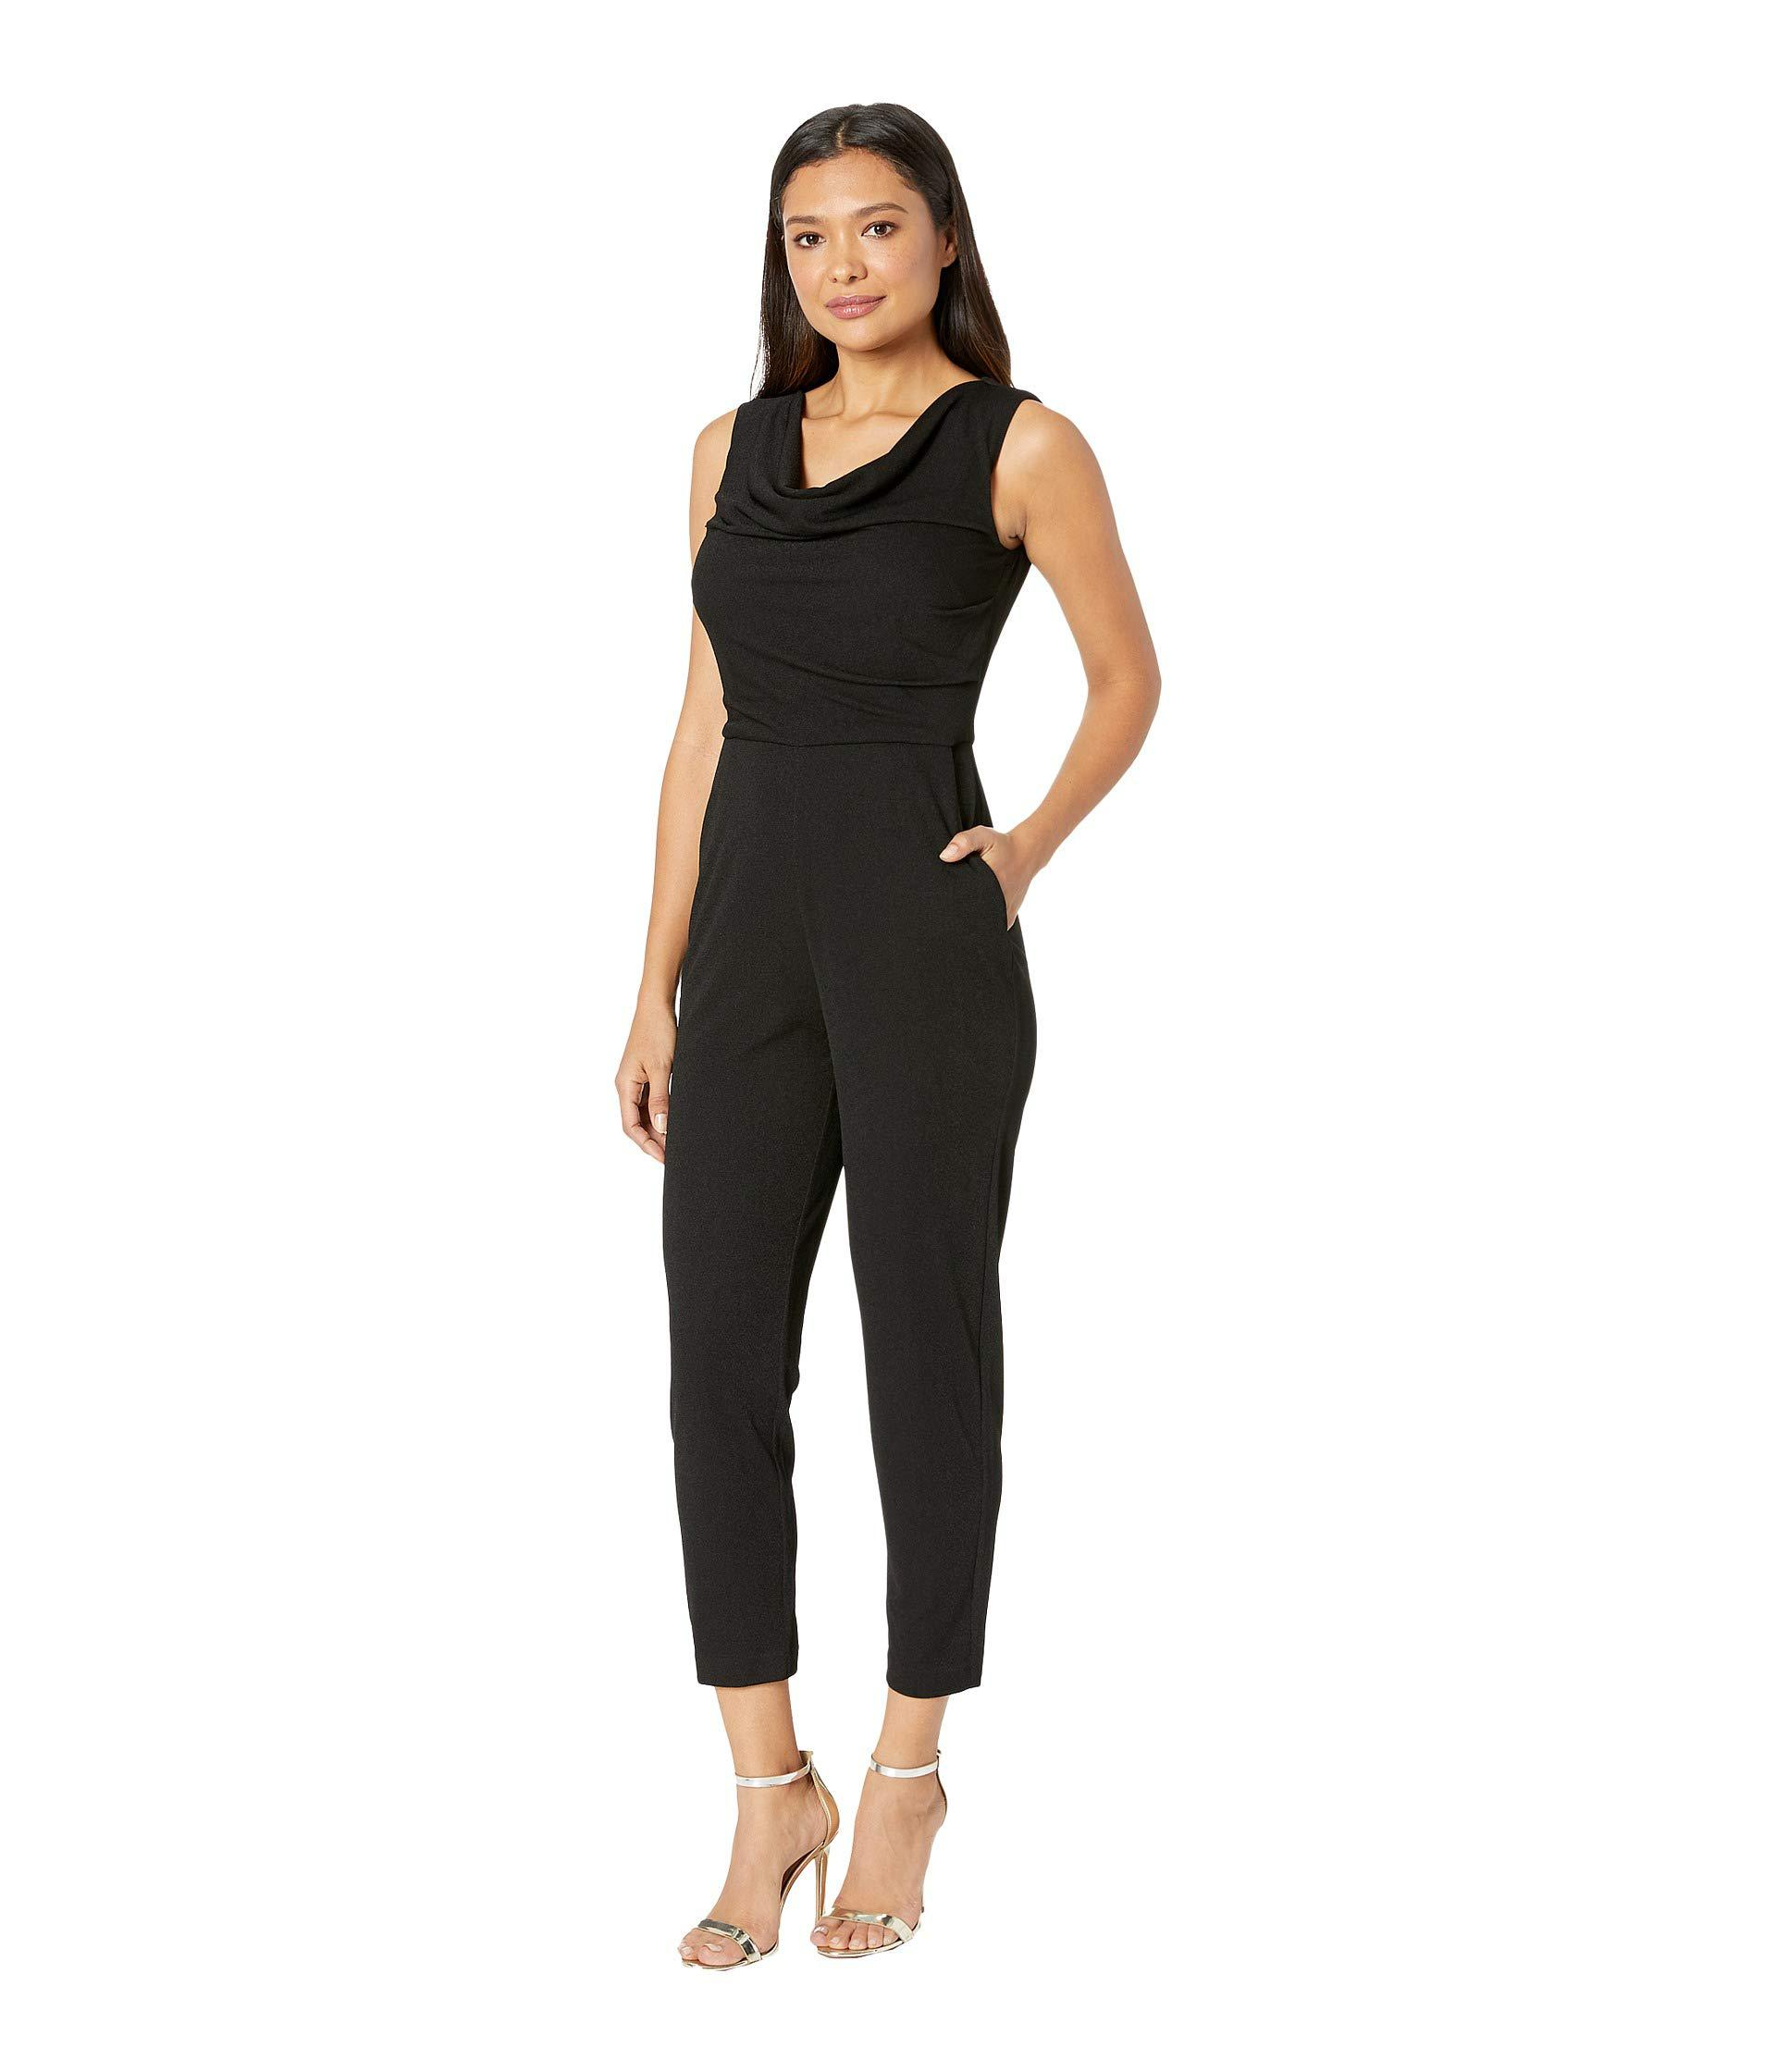 bd1f7207f68 Lyst - Maggy London Evening Crepe Cowl Neck Jumpsuit (black) Women s  Jumpsuit   Rompers One Piece in Black